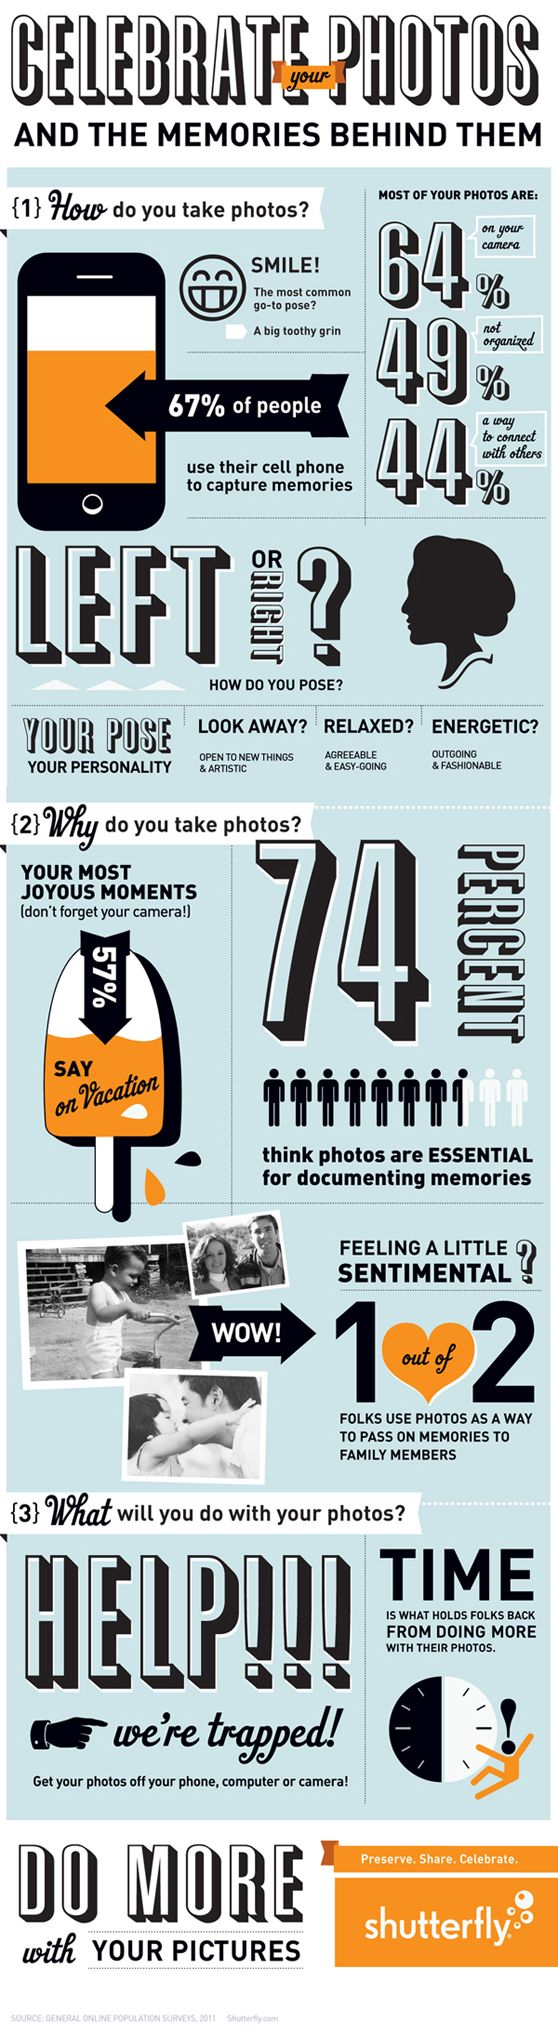 Infographic from Shutterfly